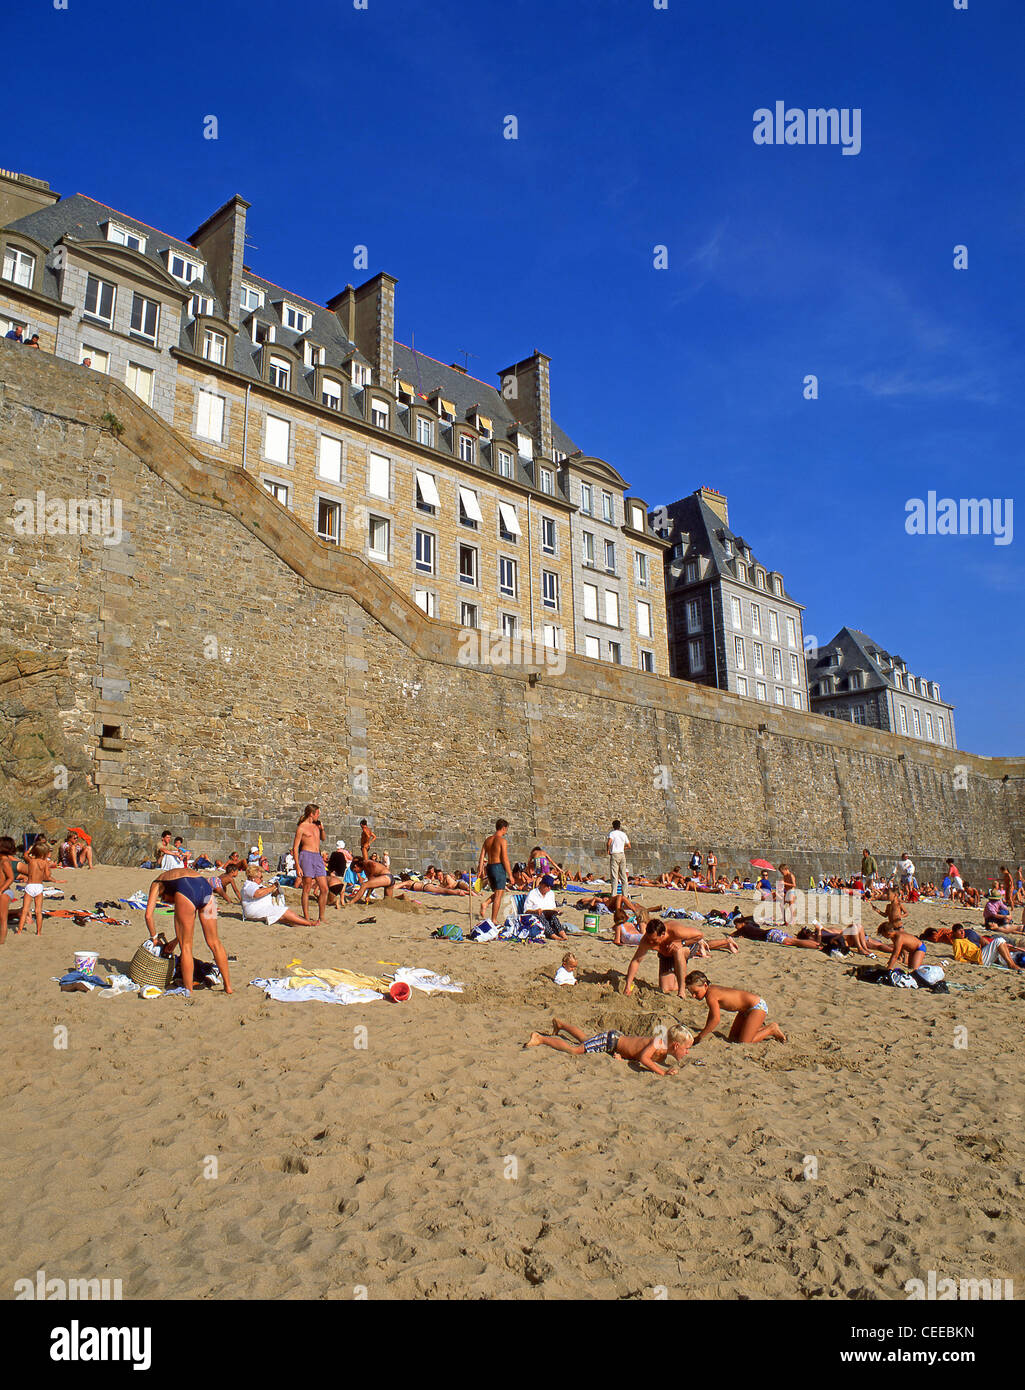 City walls and beach, Saint-Malo, Ille-et-Vilaine, Brittany, France - Stock Image